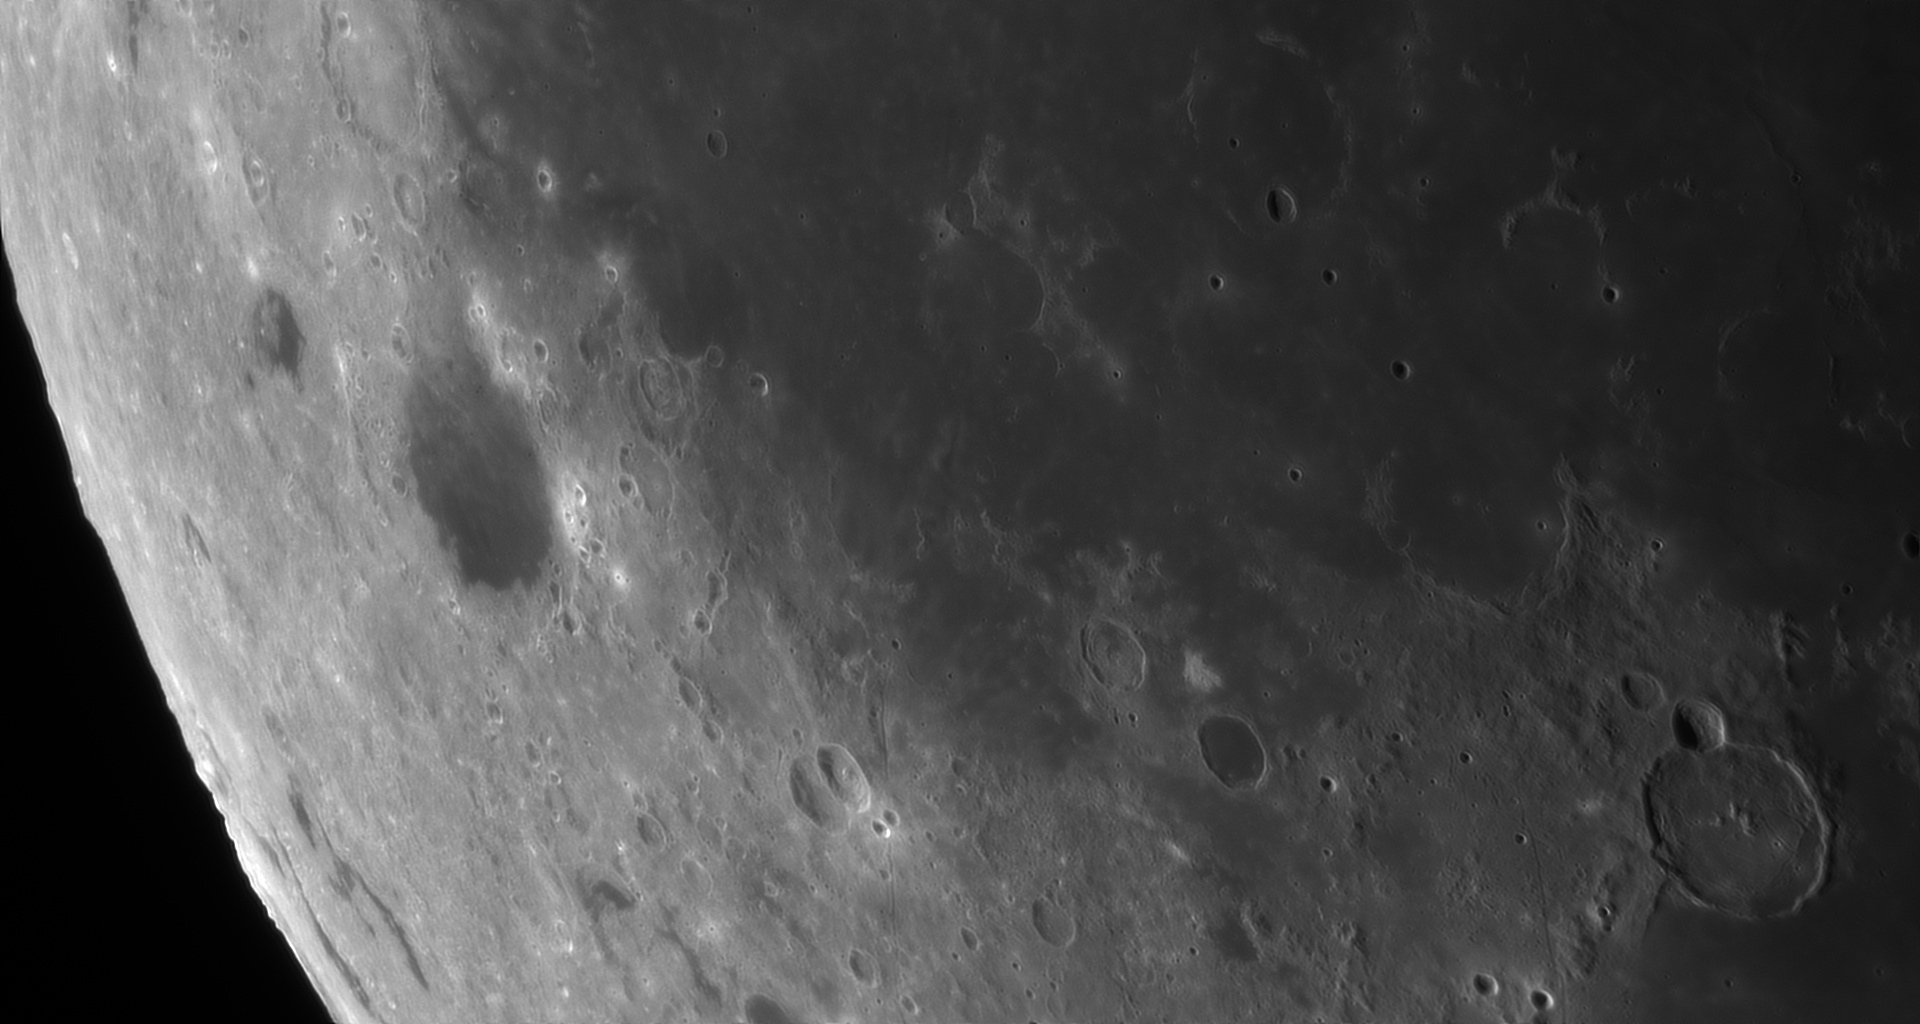 5d97a75ceb175_Moon_060107_230919_ZWOASI290MM_Rouge_23A_AS_P40_lapl4_ap456.jpg.886bac6cfcdc4bd2f30f3f338a53554a.jpg